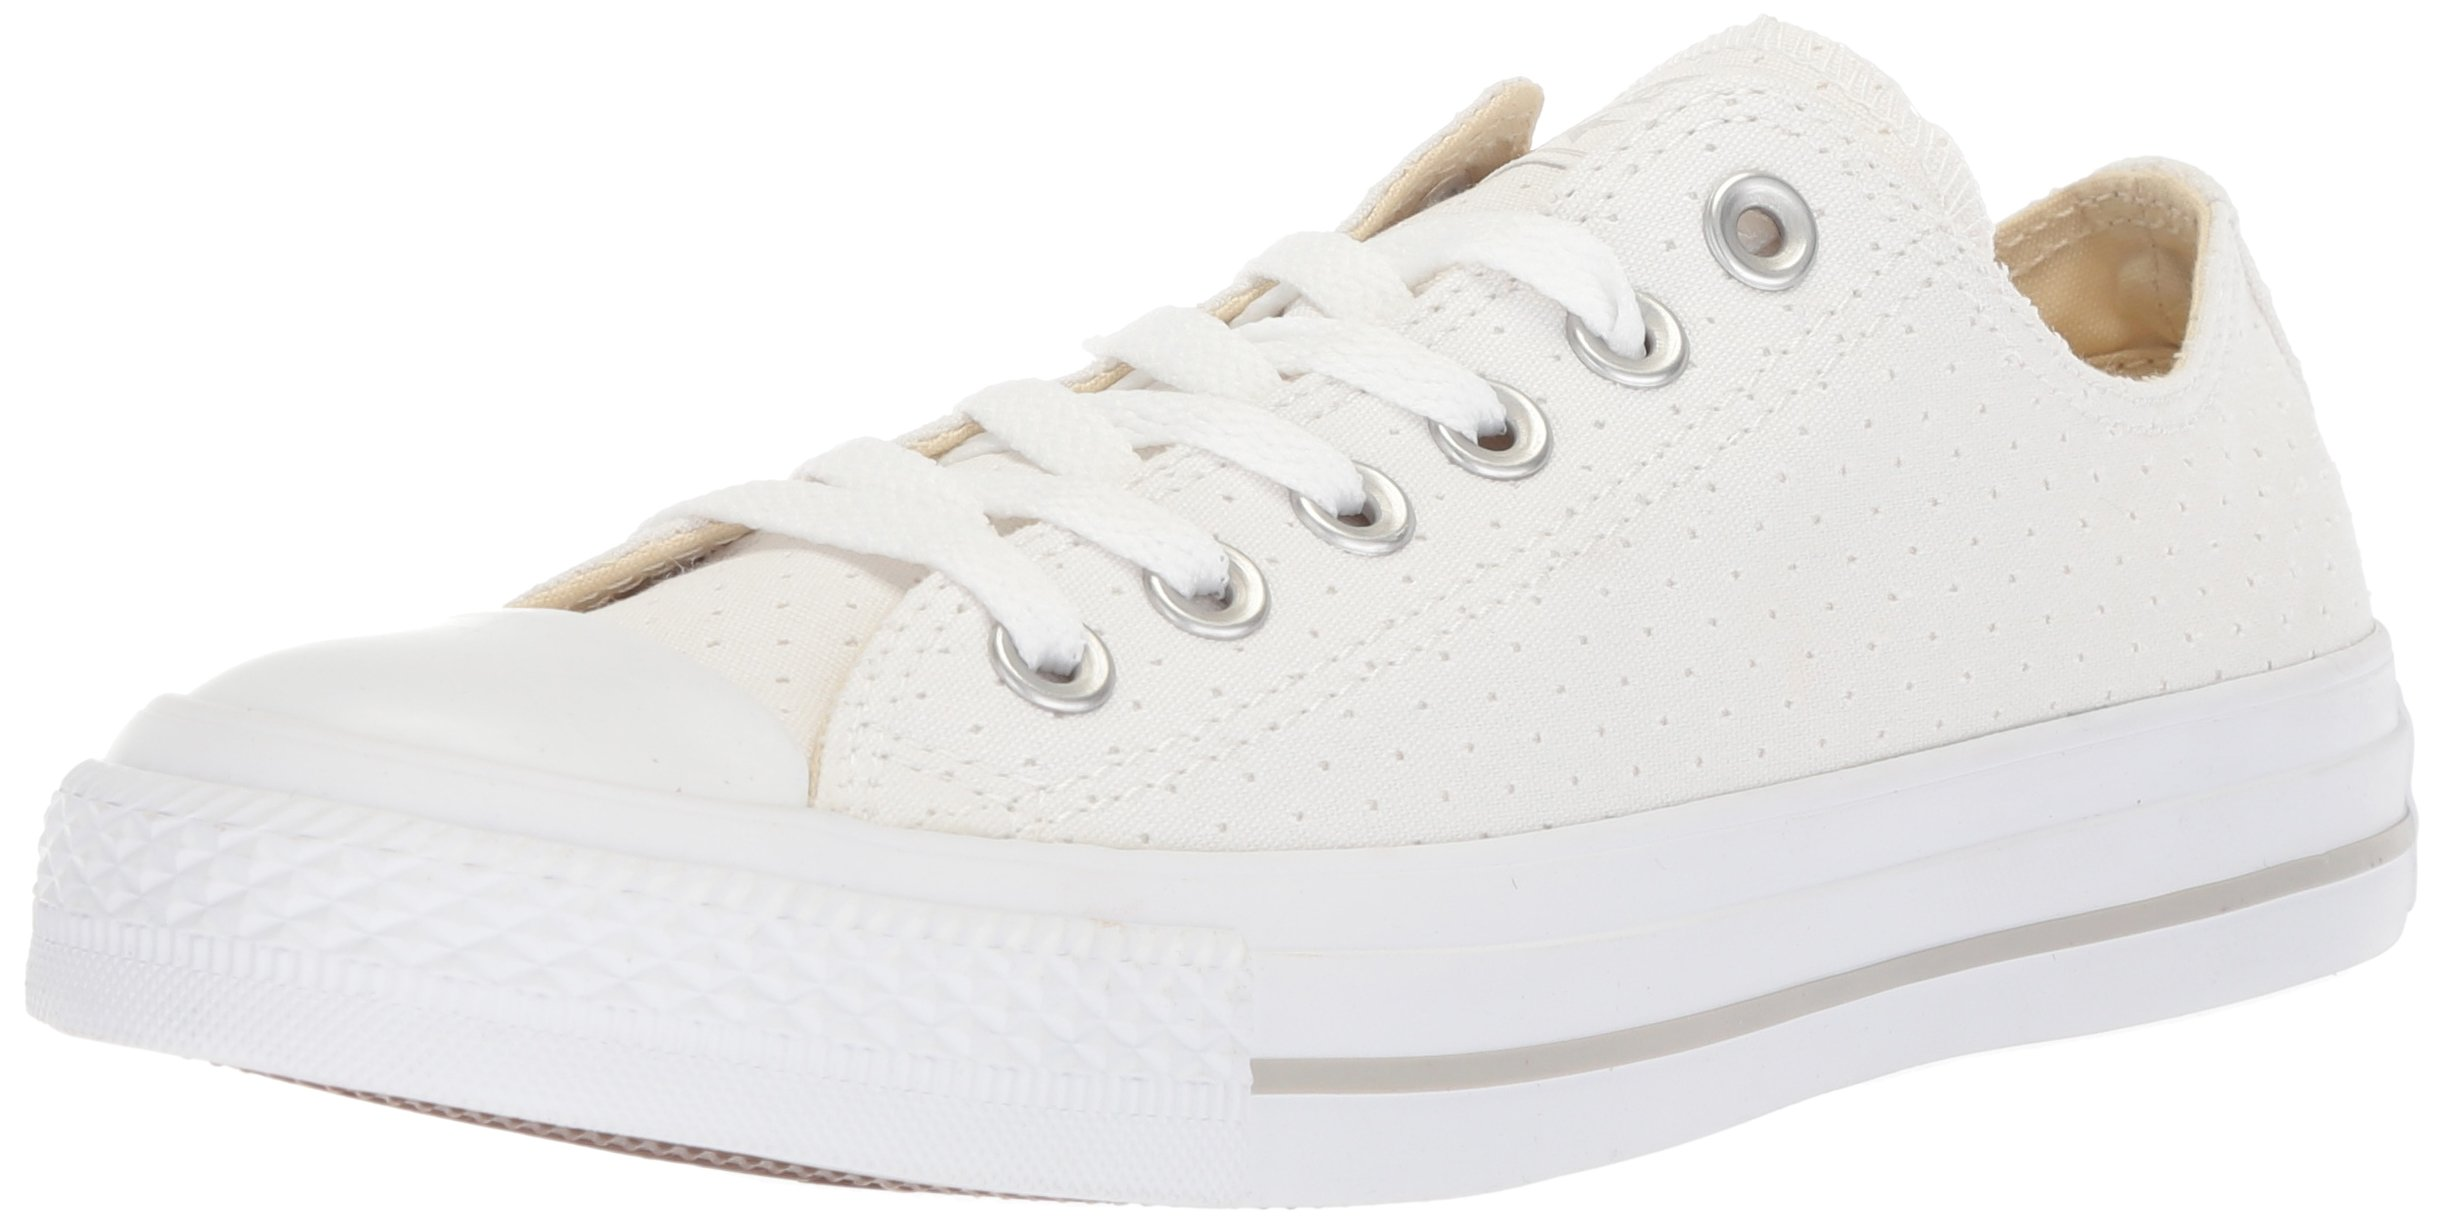 Converse Women's Chuck Taylor All Star Perforated Canvas Low Top Sneaker, White/White/White, 8 M US